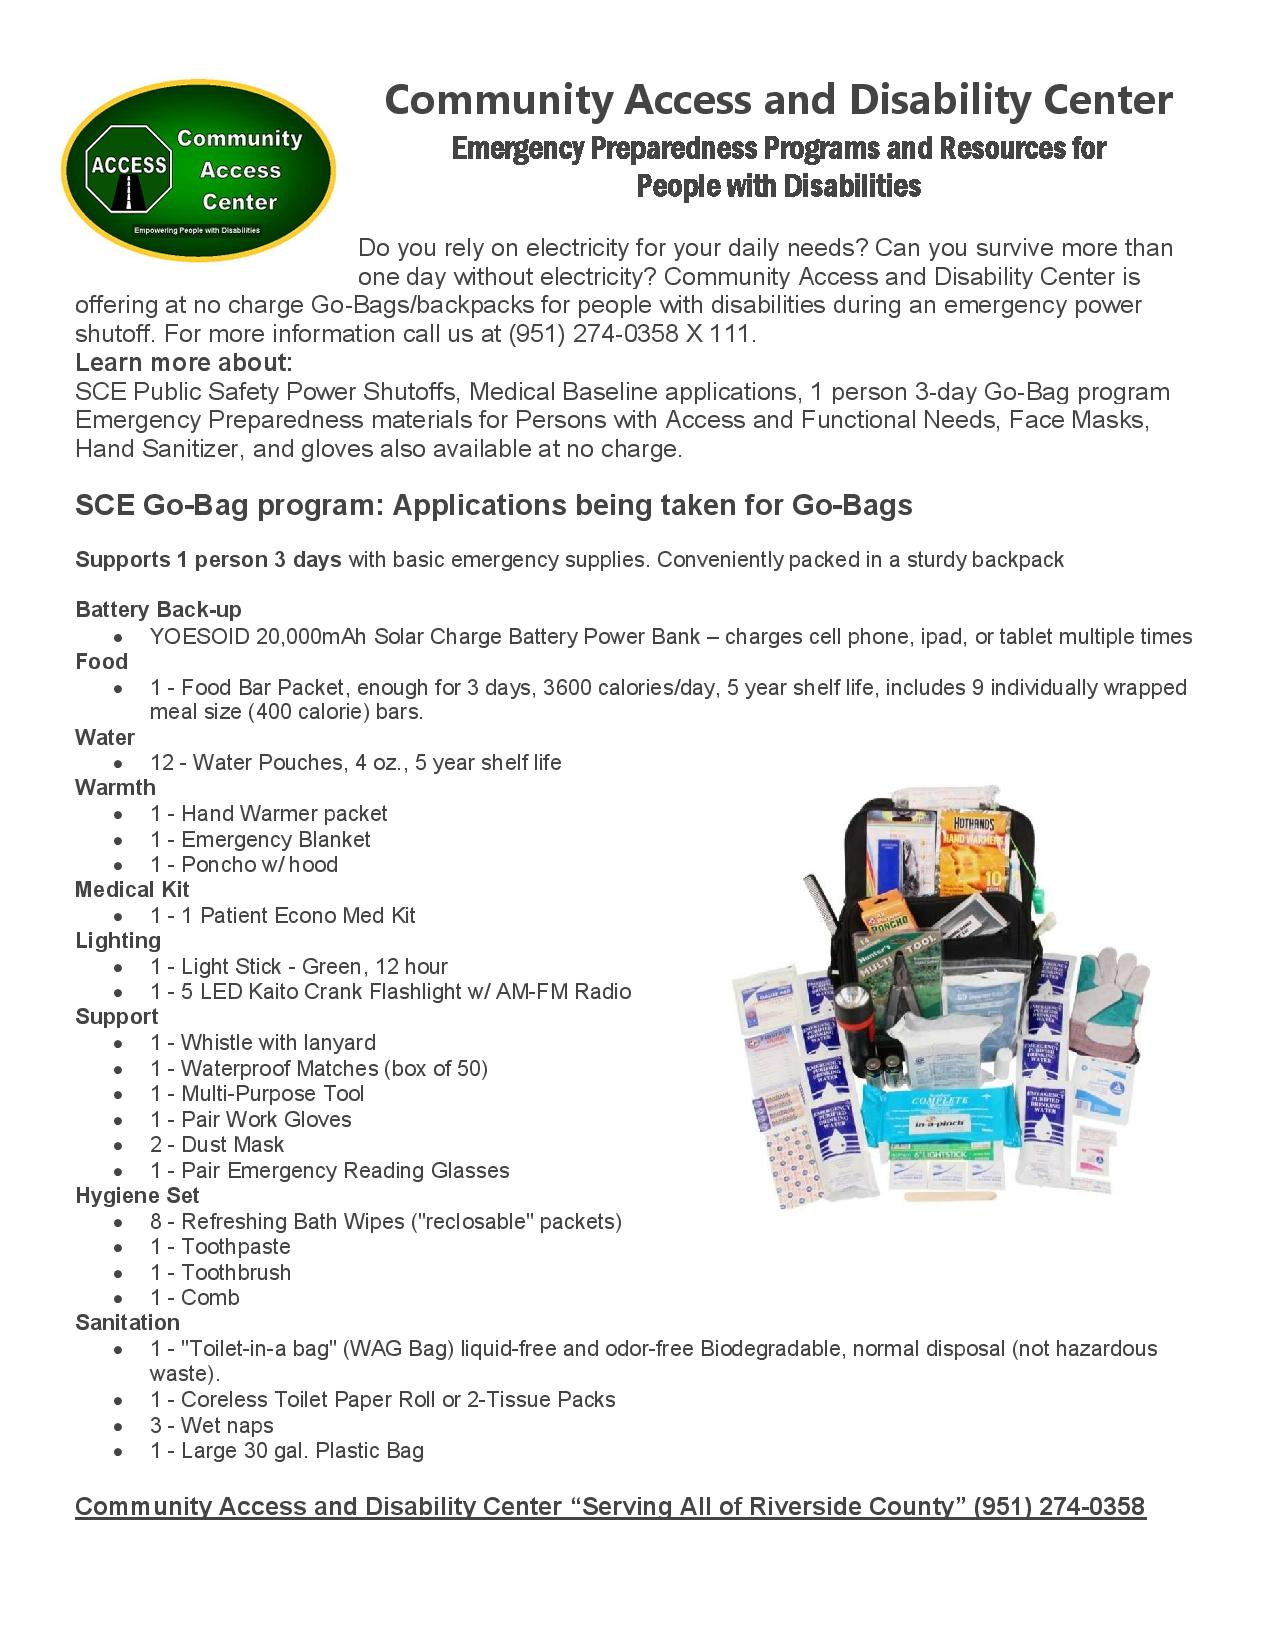 Community Access/Disability Center SCE Medical Baseline Go-Bag program 2020-page-001